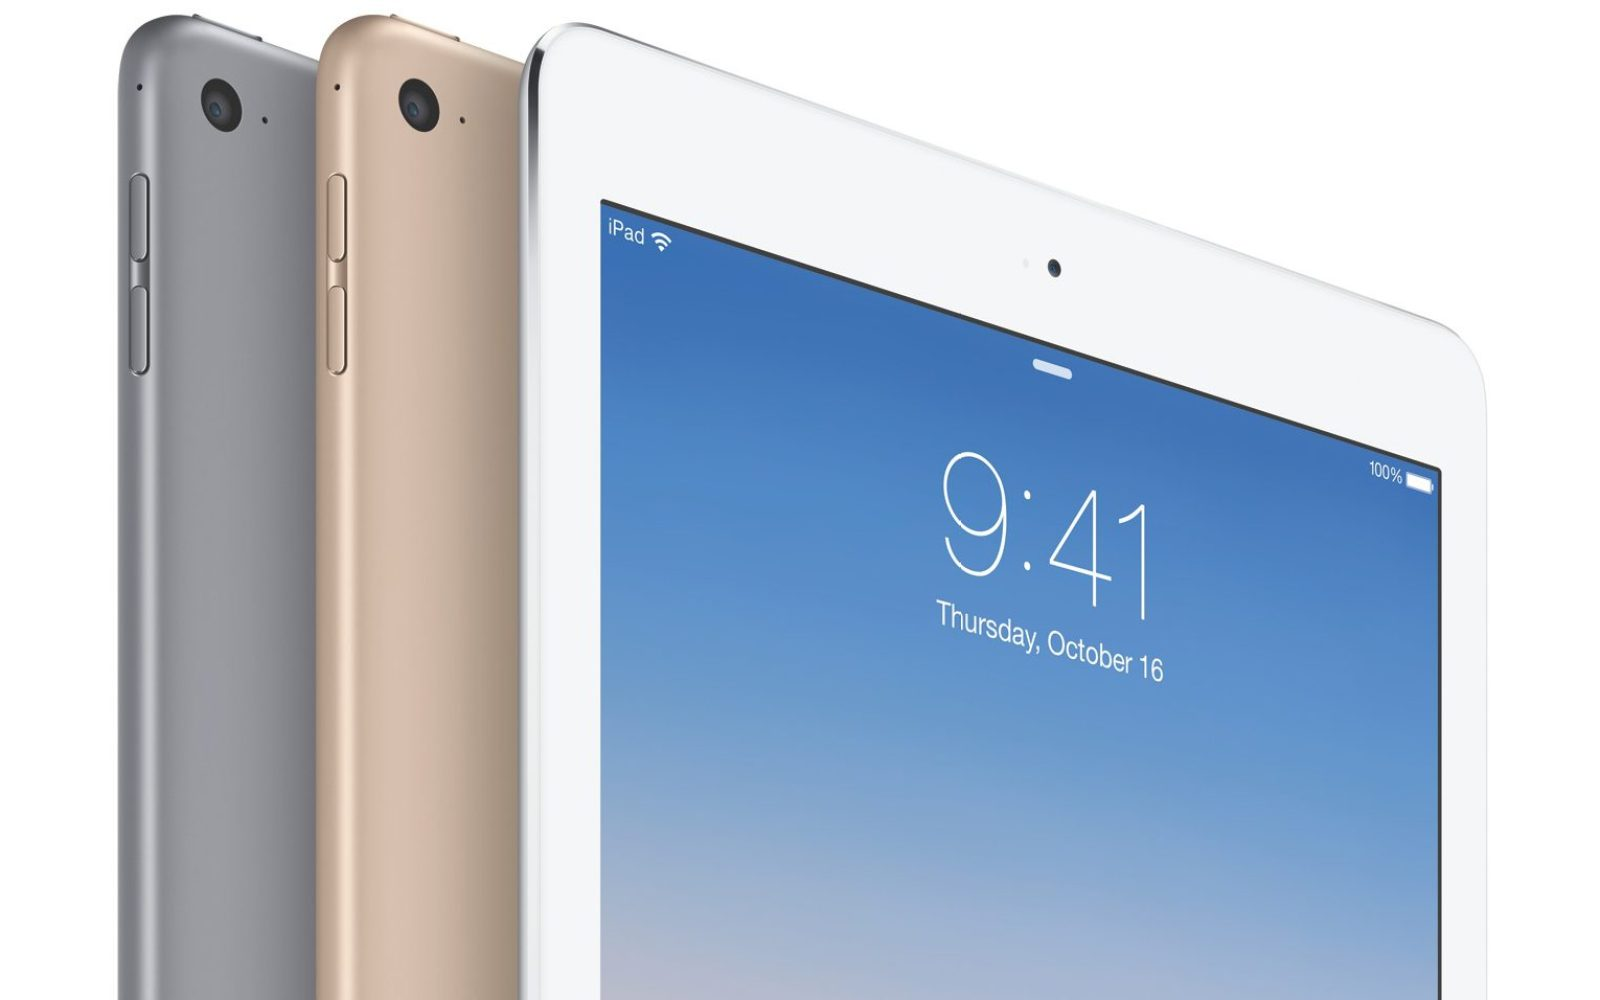 Apple now upgrading iPad 4th gen replacements to newer iPad Air 2 as stock dwindles